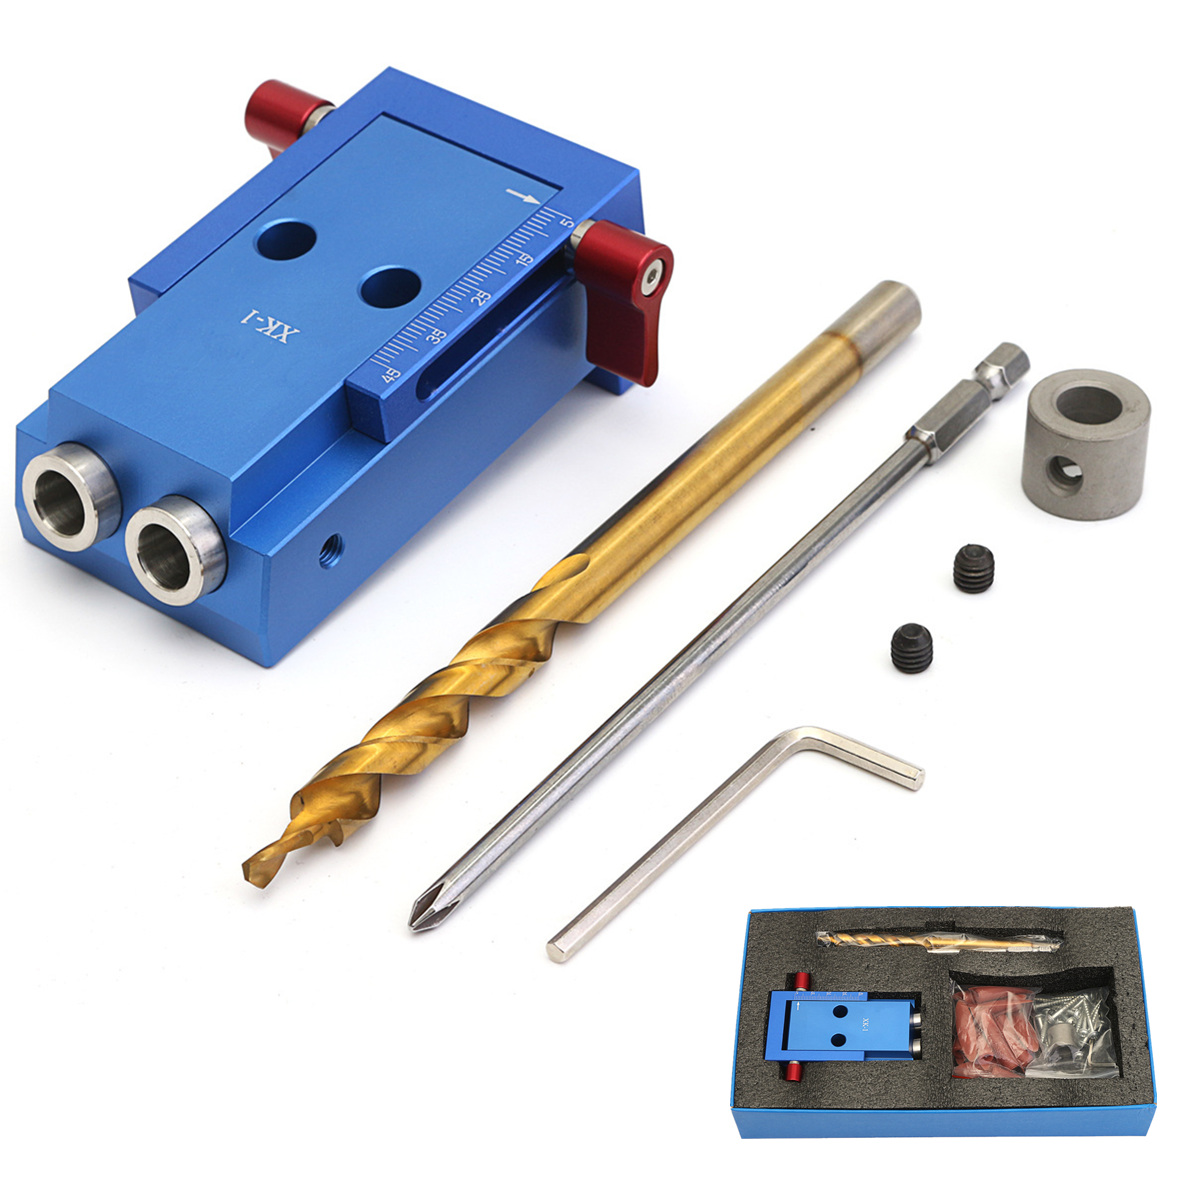 Hole Drill Bit Blue Aluminum Pocket Hole Drill Jig Kit With Step Drilling Bit Woodworking Cutter Tool